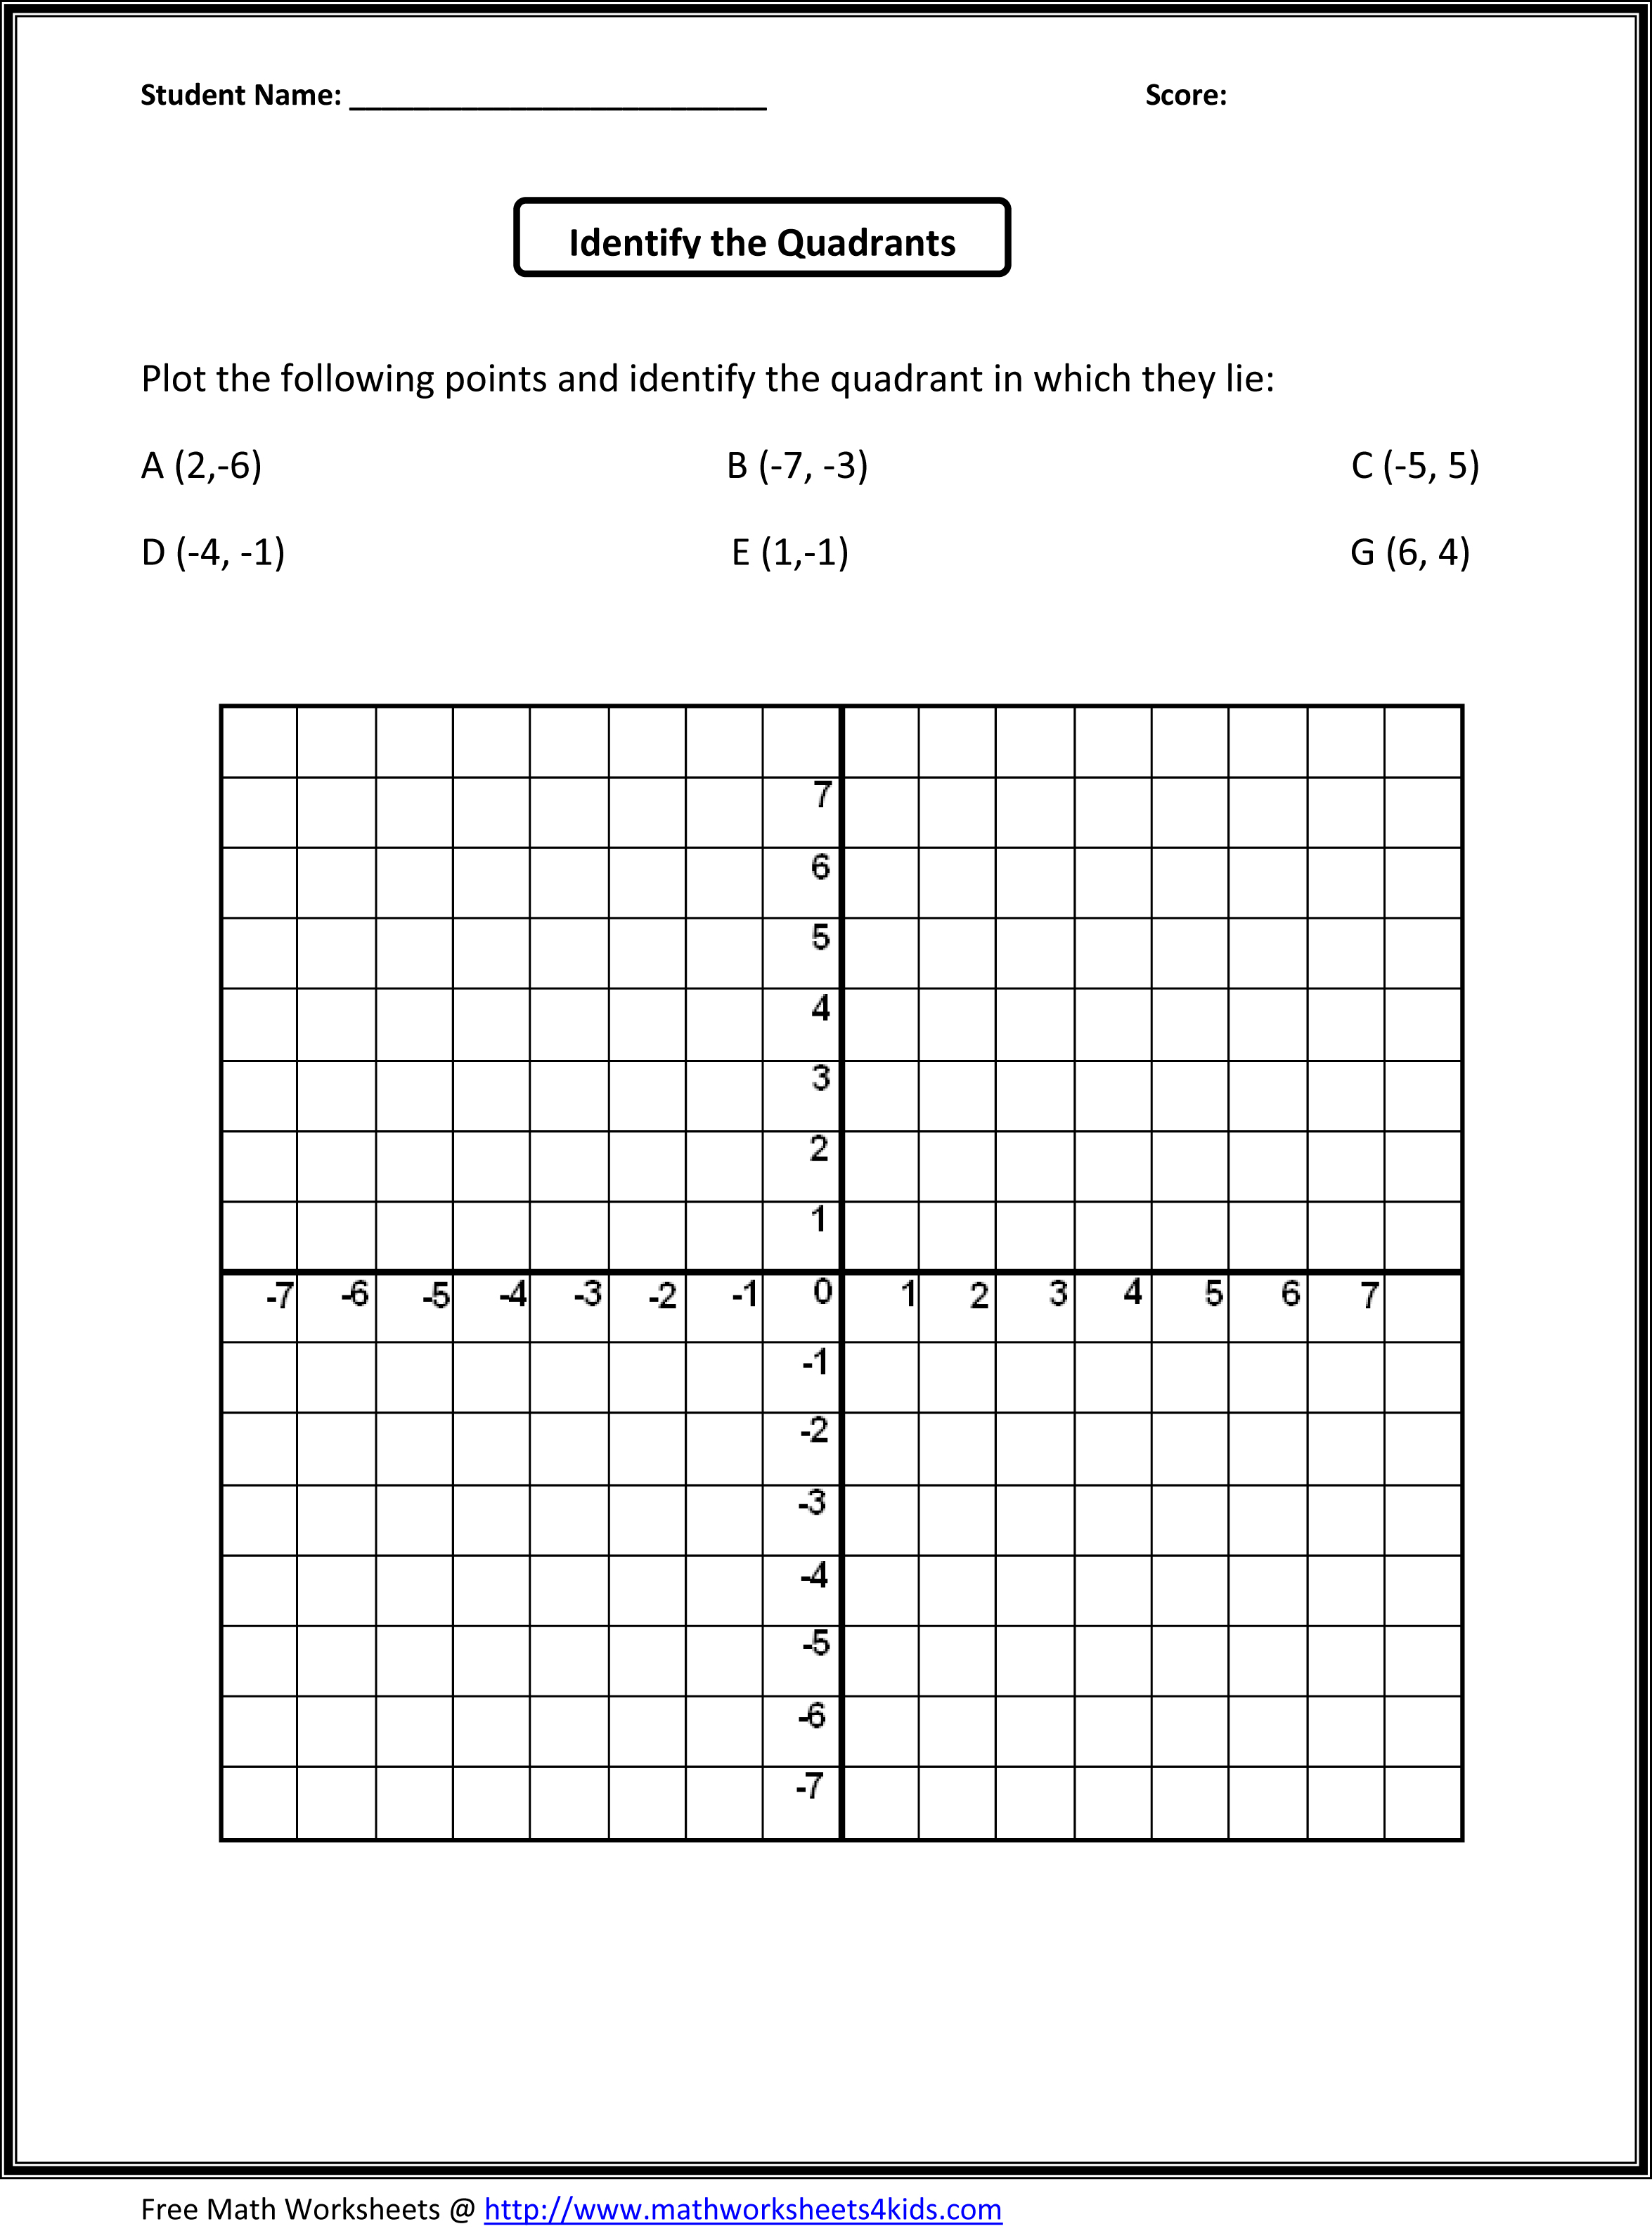 Hard math problems for 5th graders Coursework Help – 5th Grade Math Problems Worksheets